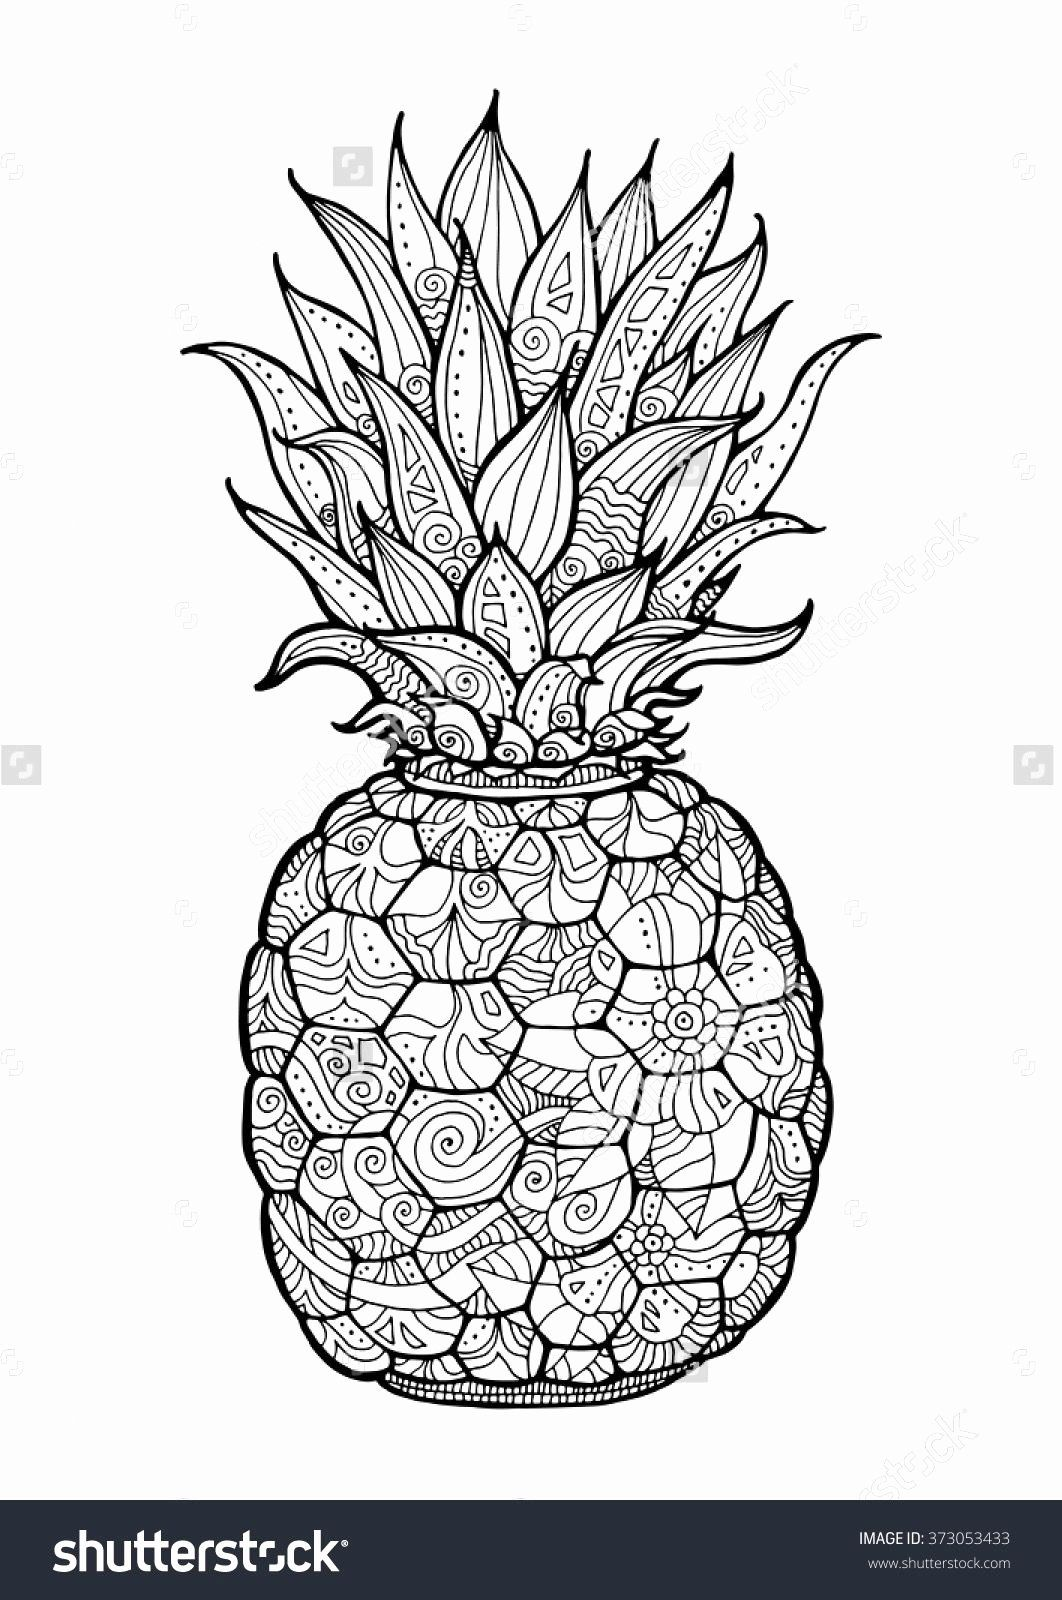 Coloring Pages Of Fruits In A Basket Elegant Coloring Arts 43 Remarkable Pineapple Coloring Sheets Fruit Coloring Pages Mandala Coloring Pages Coloring Books